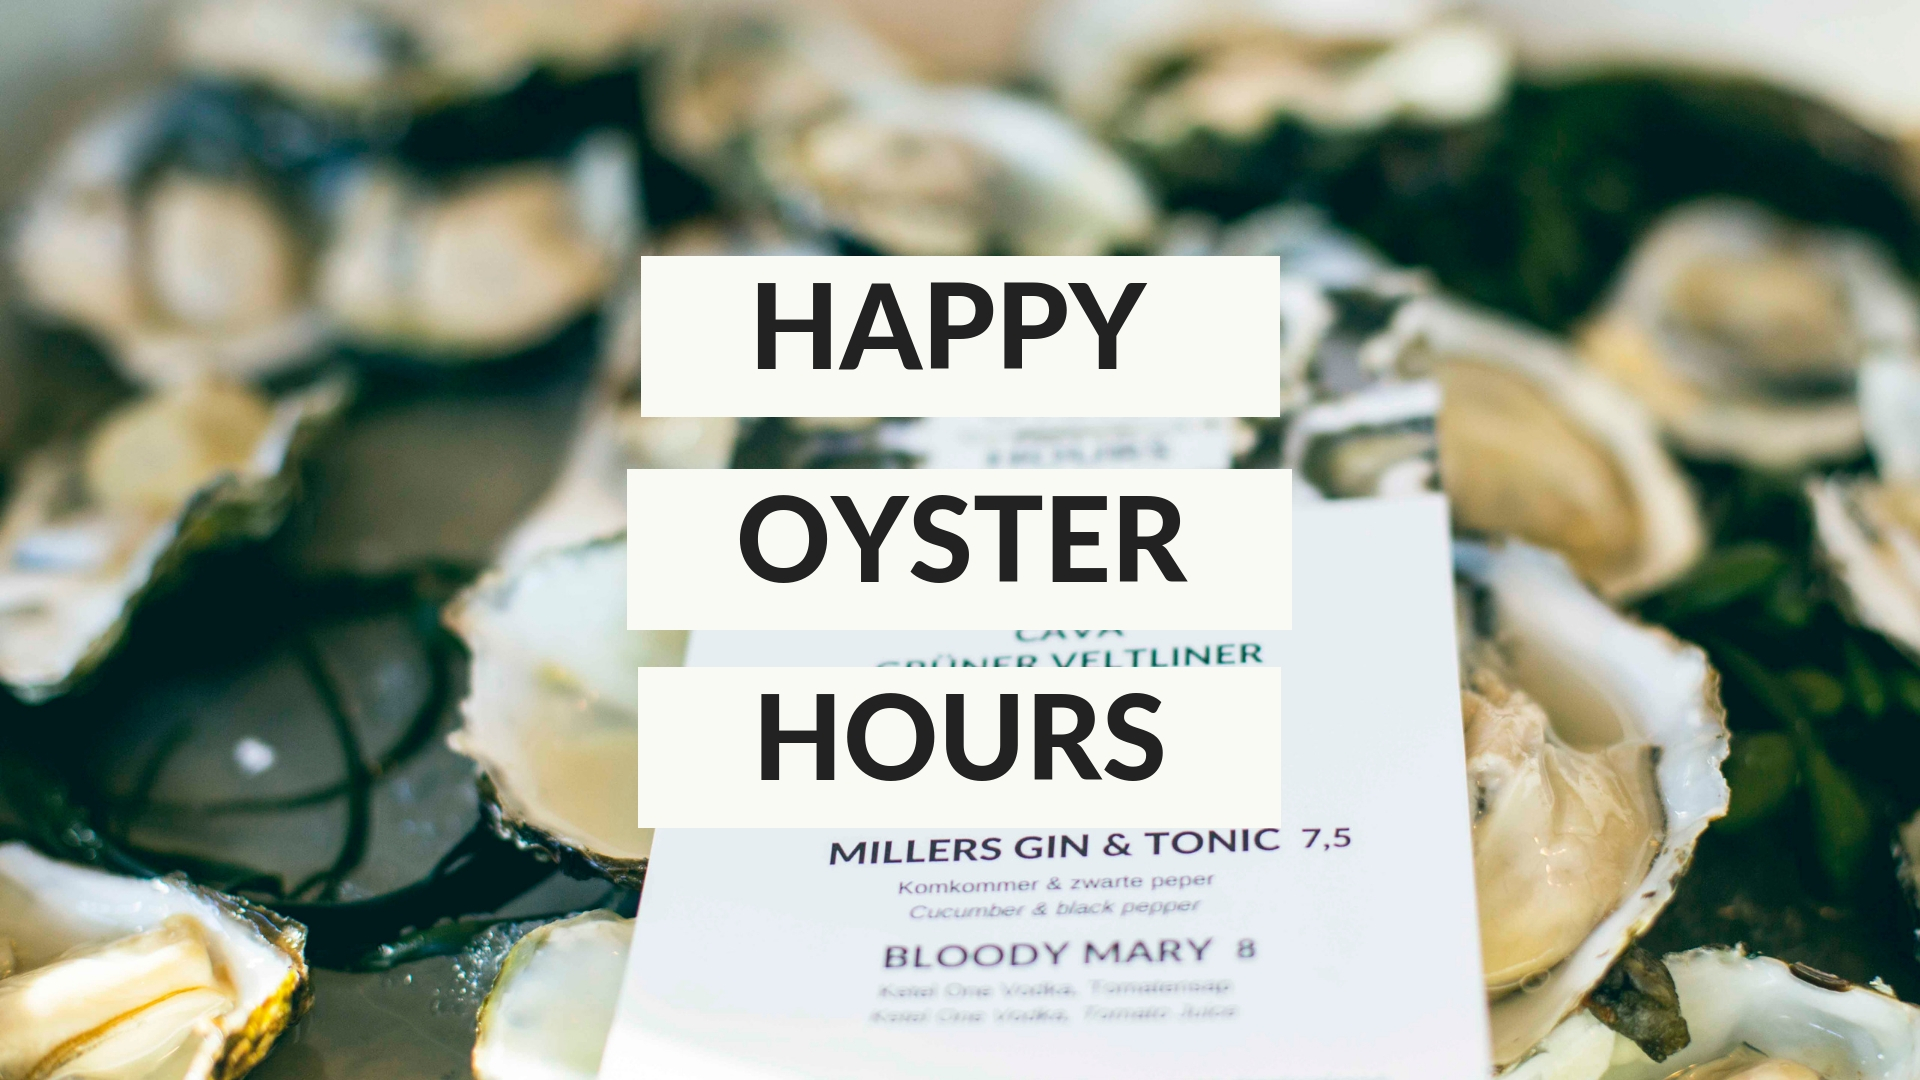 HAPPY OYSTER HOURS (1).jpg